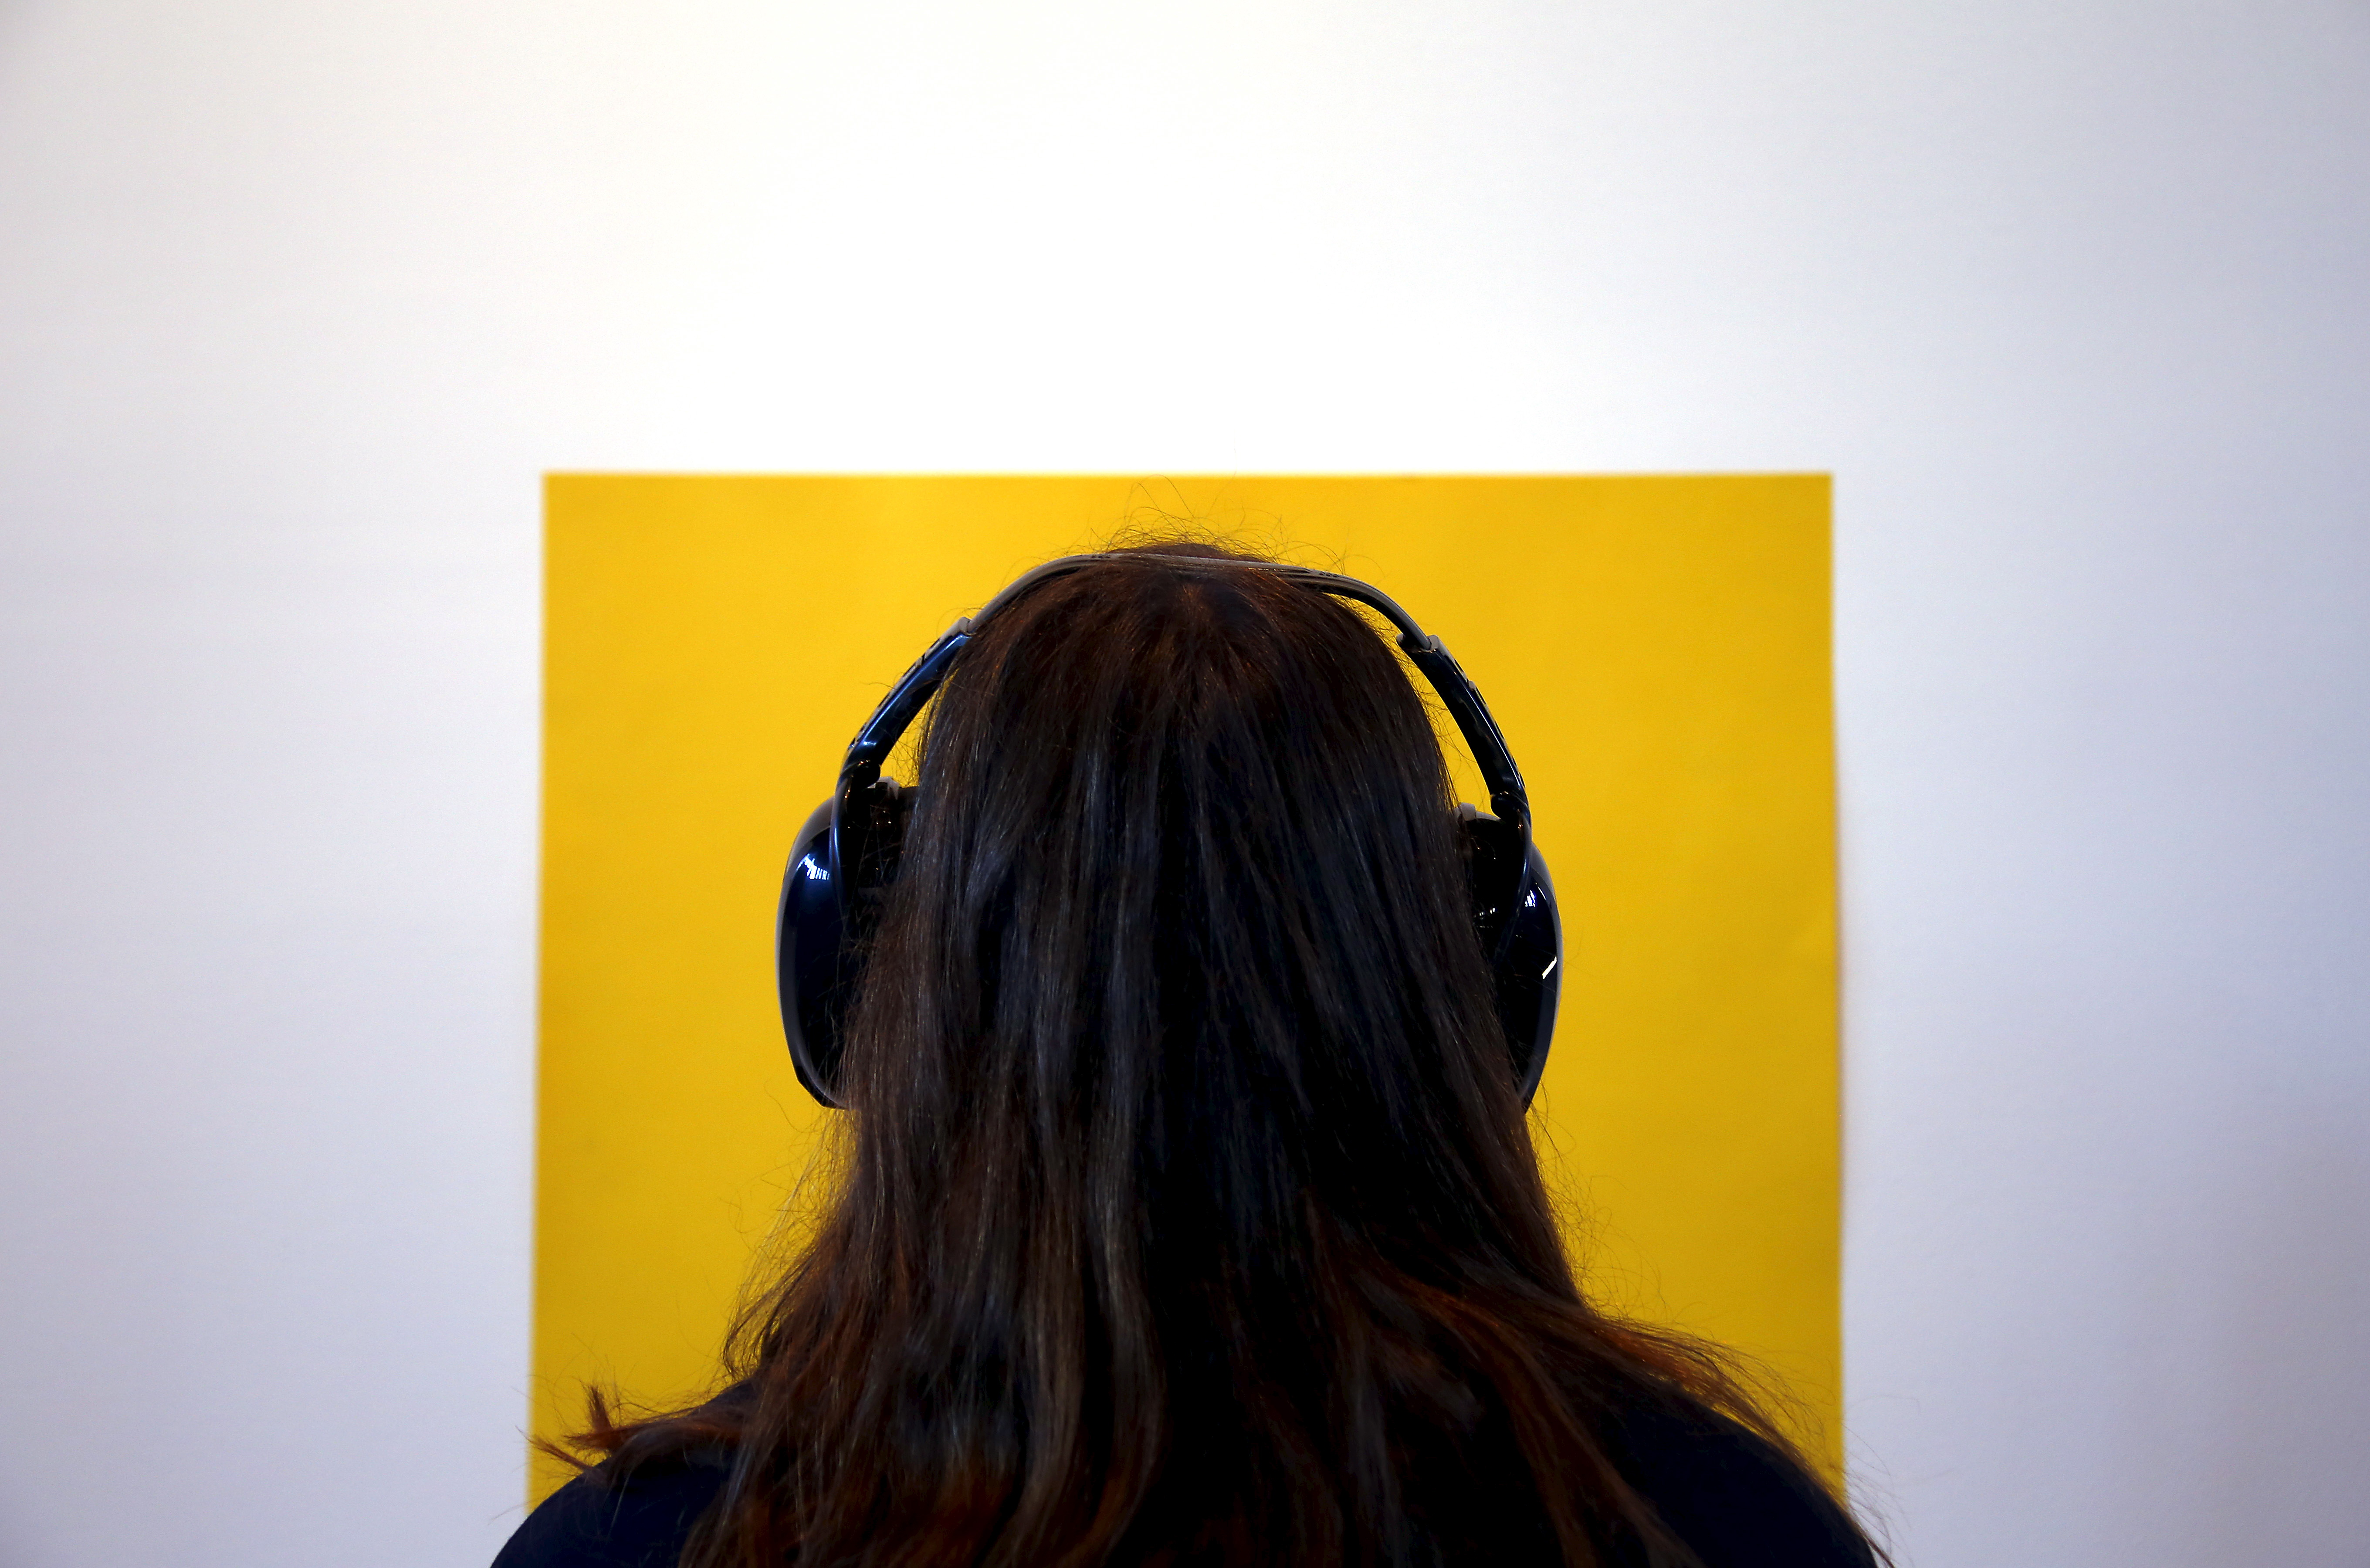 A museum visitor wearing noise-cancelling headphones.